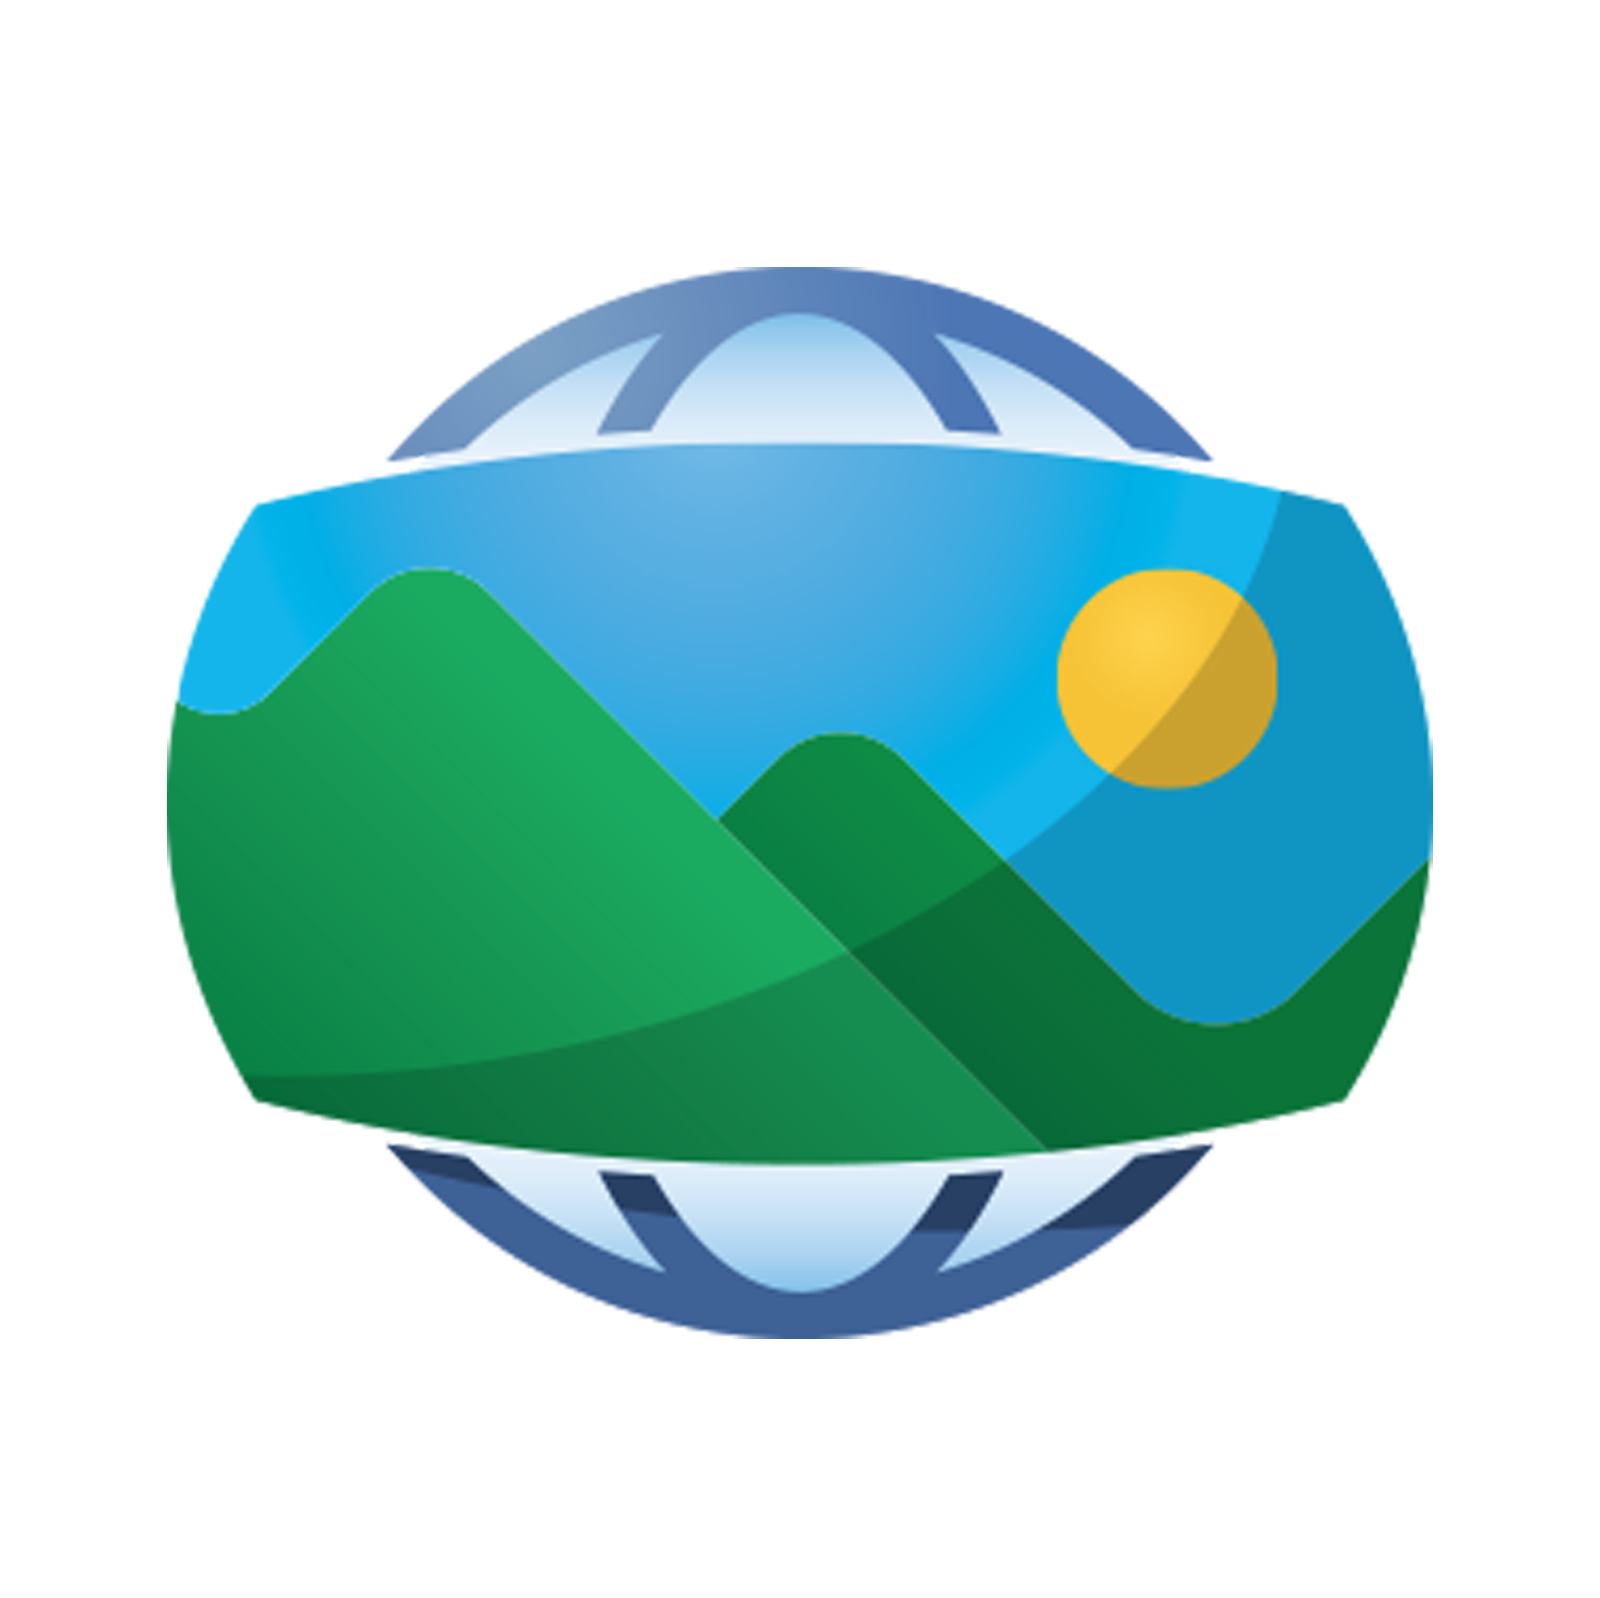 Photographer clipart green camera. Photo sphere android central